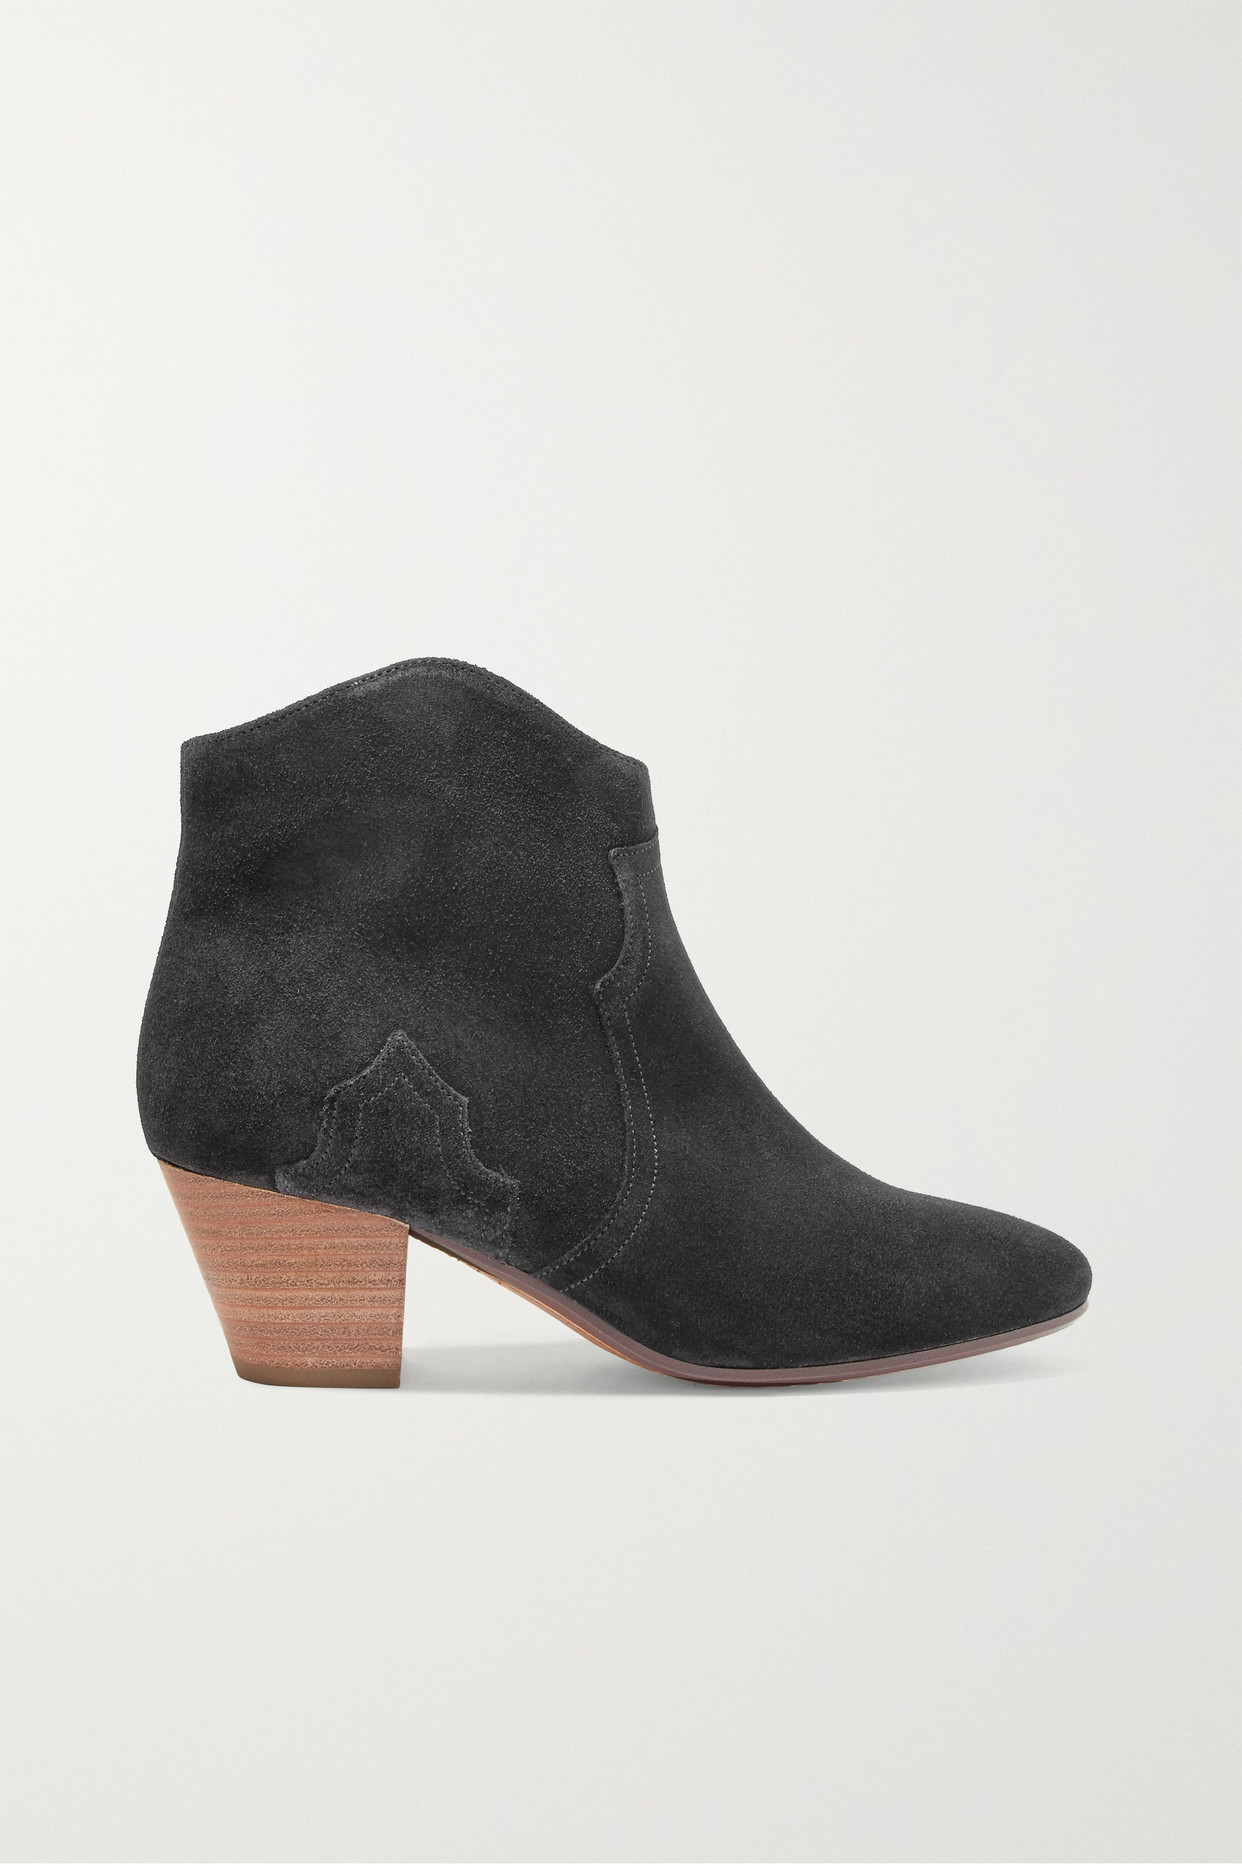 ISABEL MARANT - Étoile The Dicker 绒面革踝靴 - 黑色 - FR40